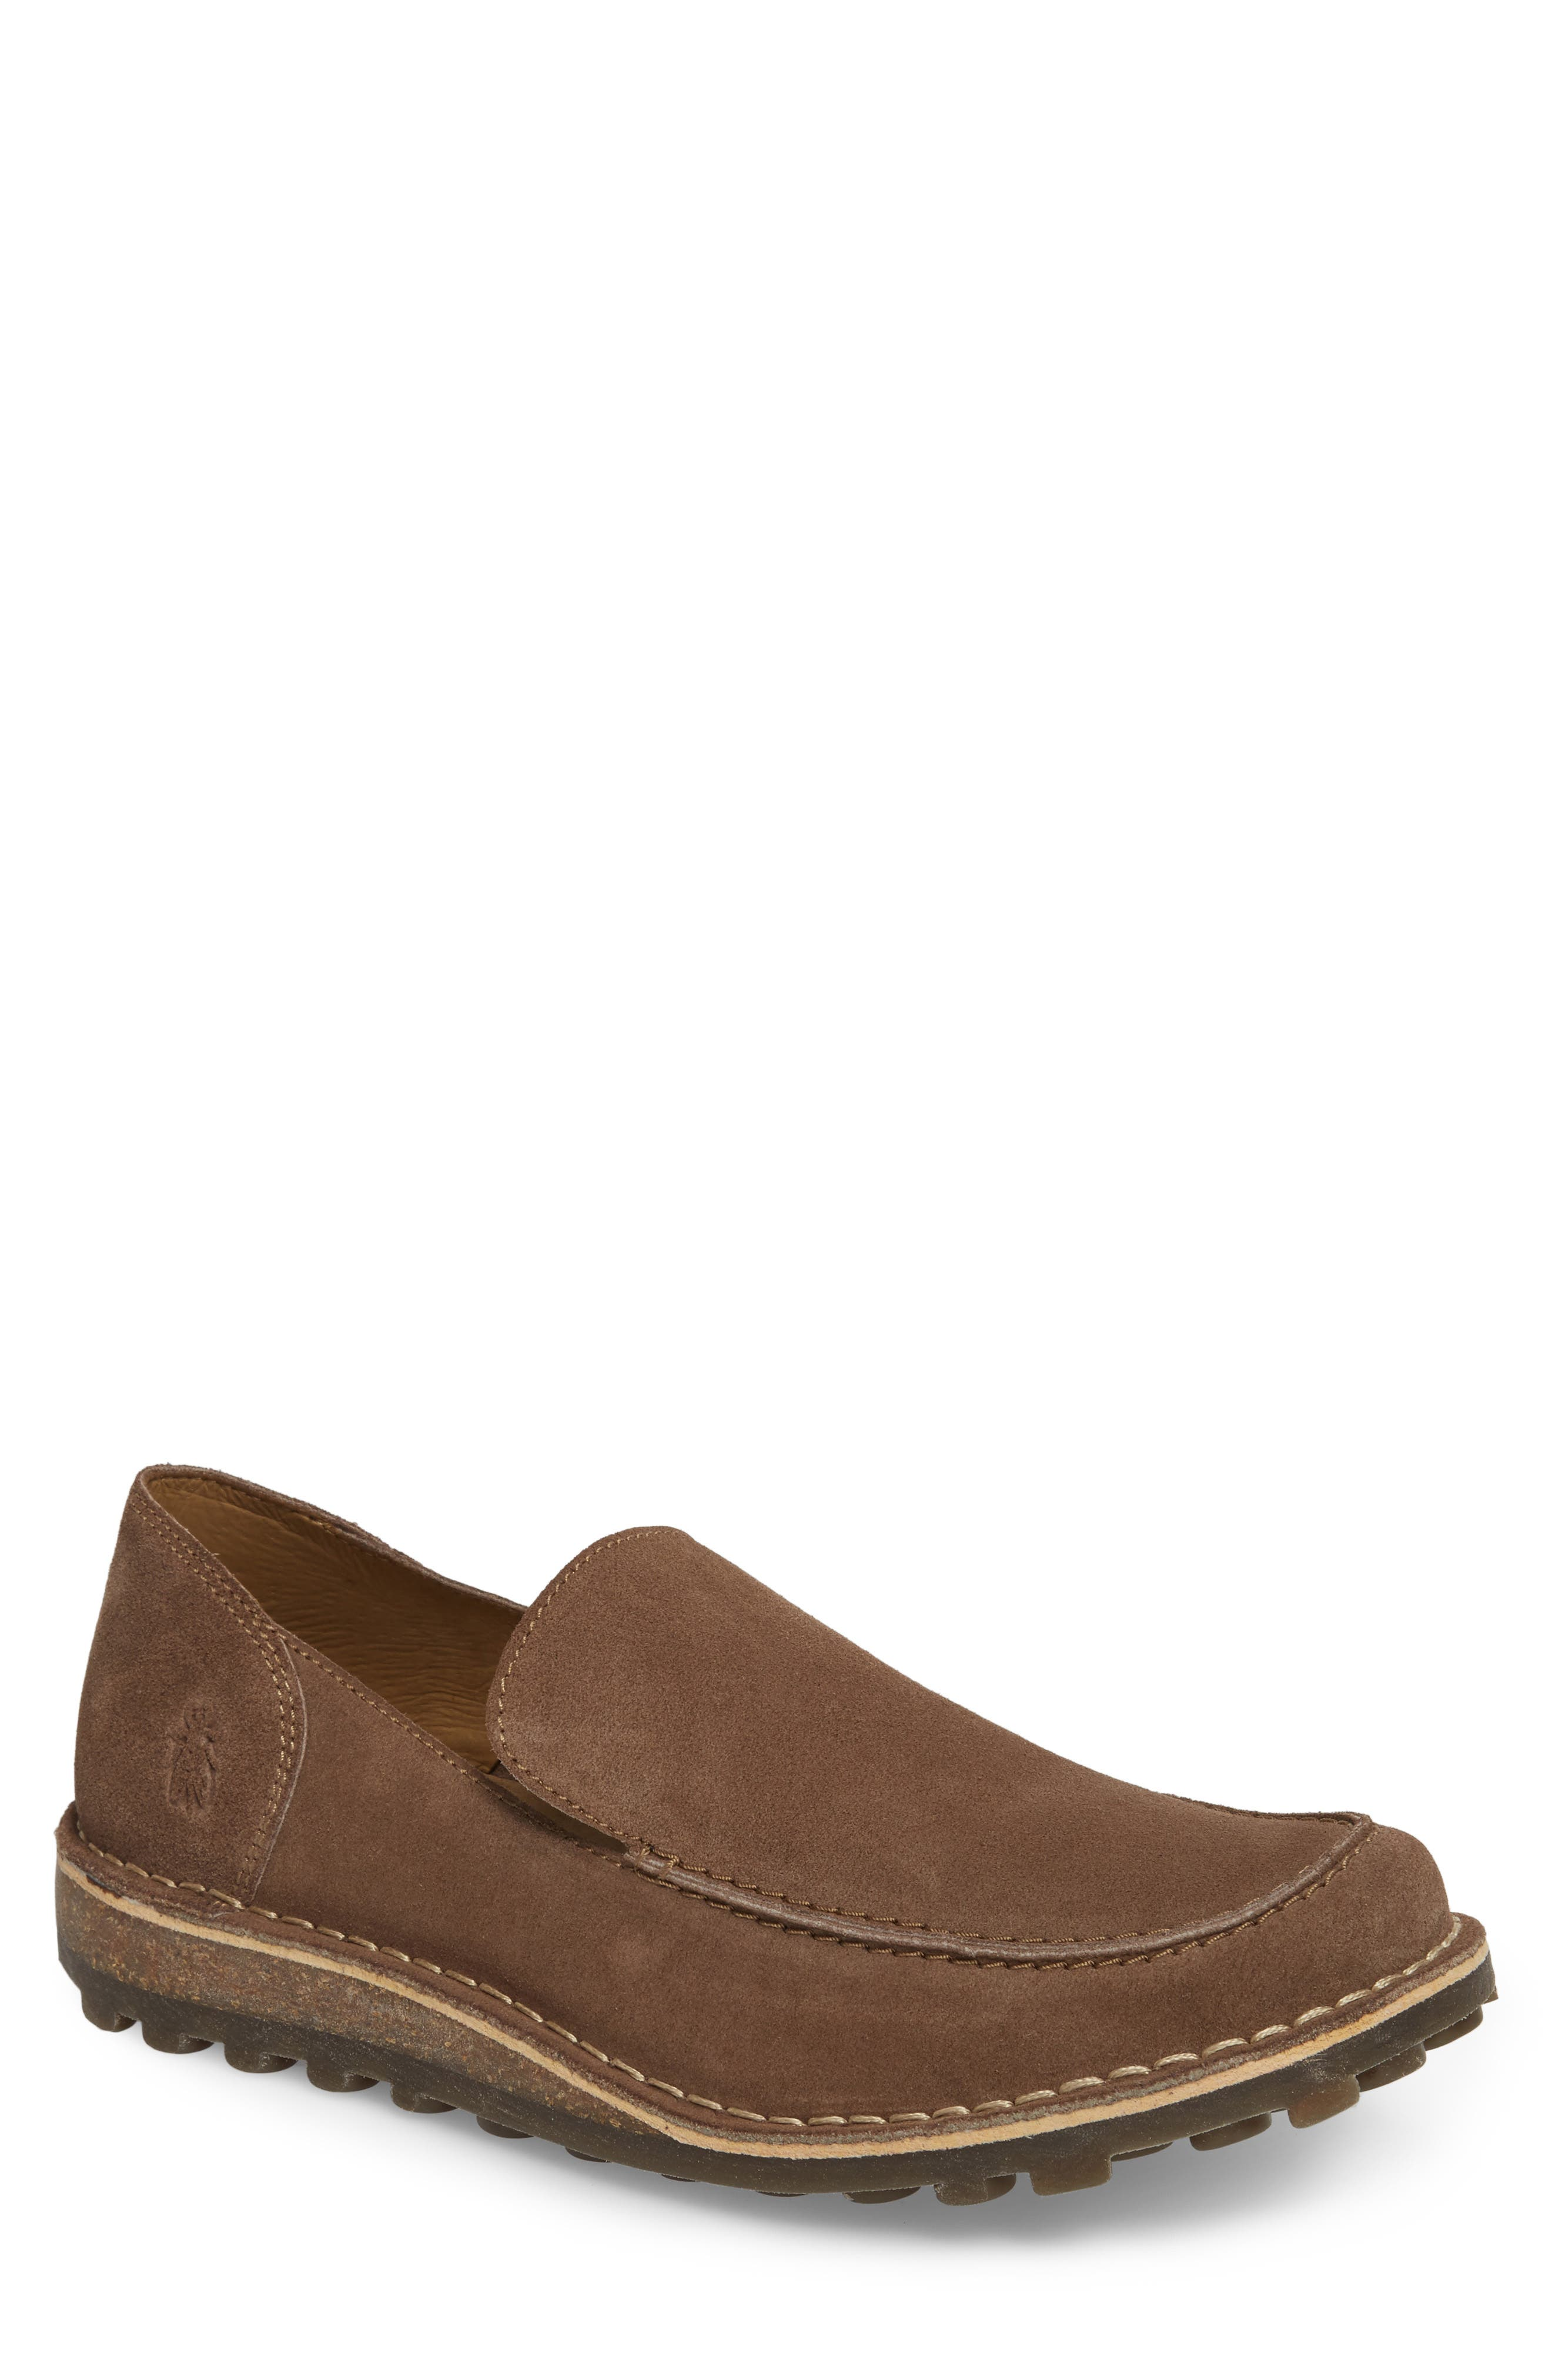 Meve Moc Toe Loafer,                         Main,                         color, Taupe Suede